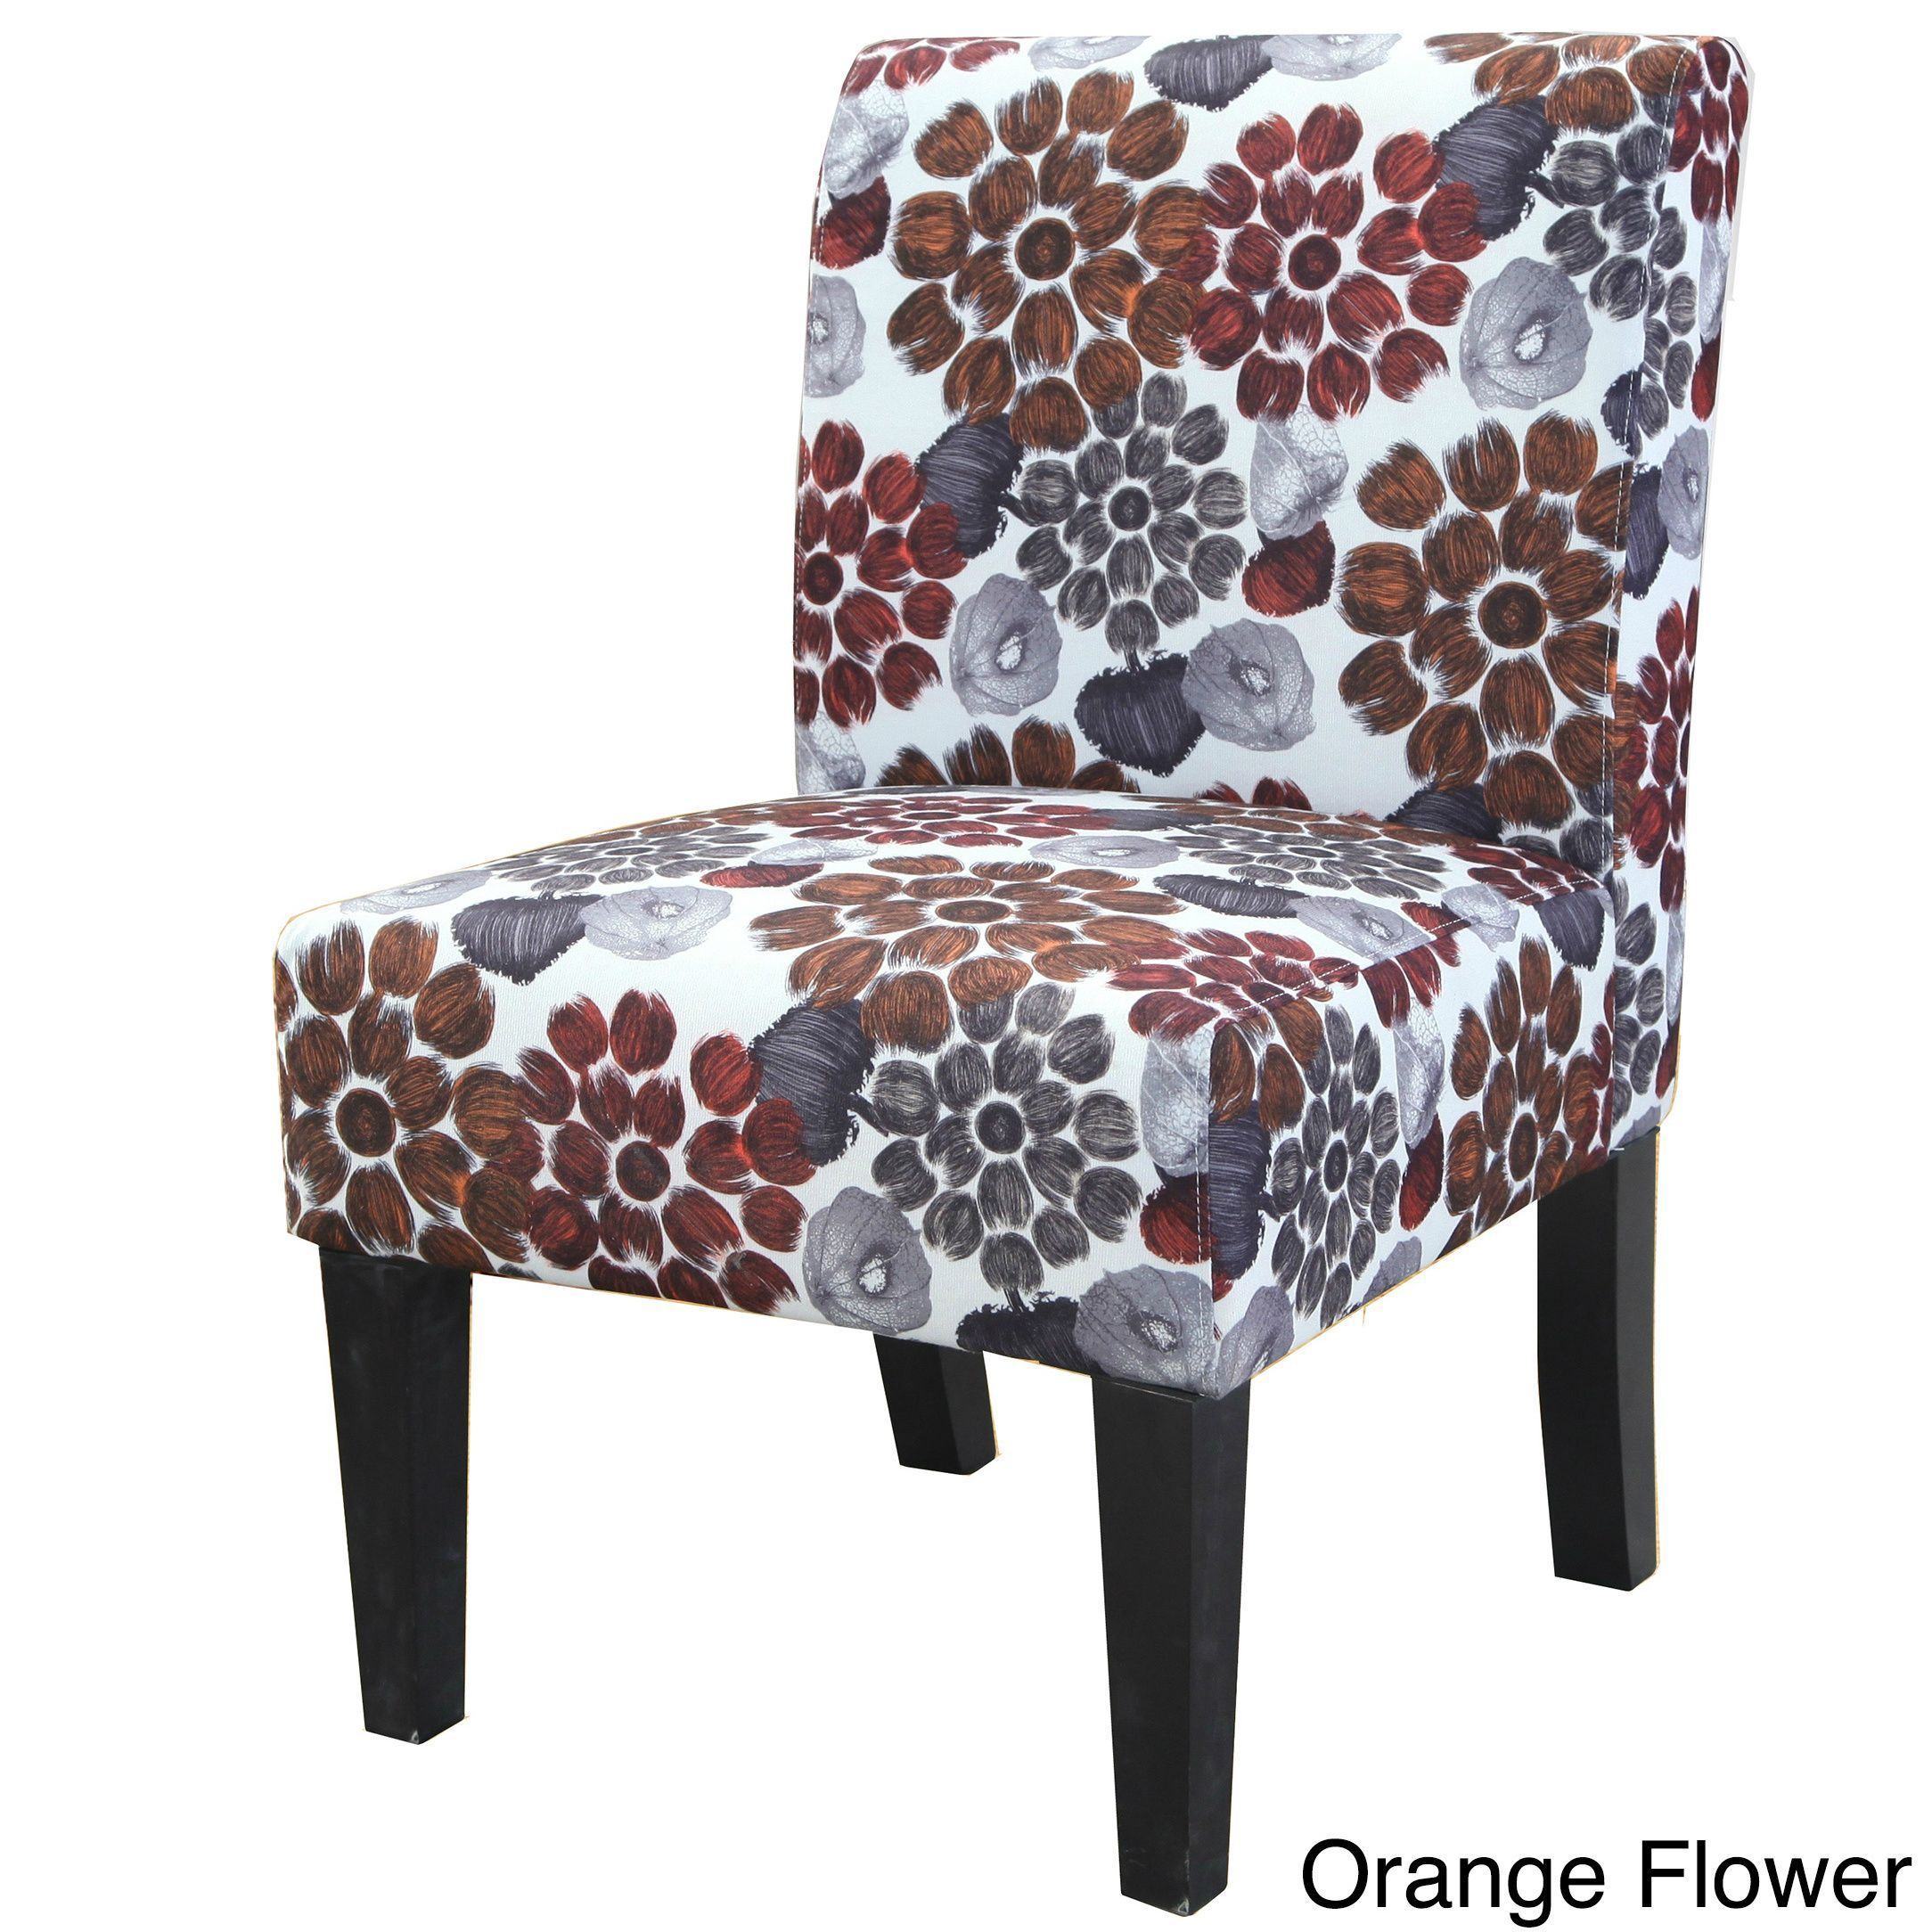 Us pride furniture grace floral accent chair orange flower pattern fabric accent chair